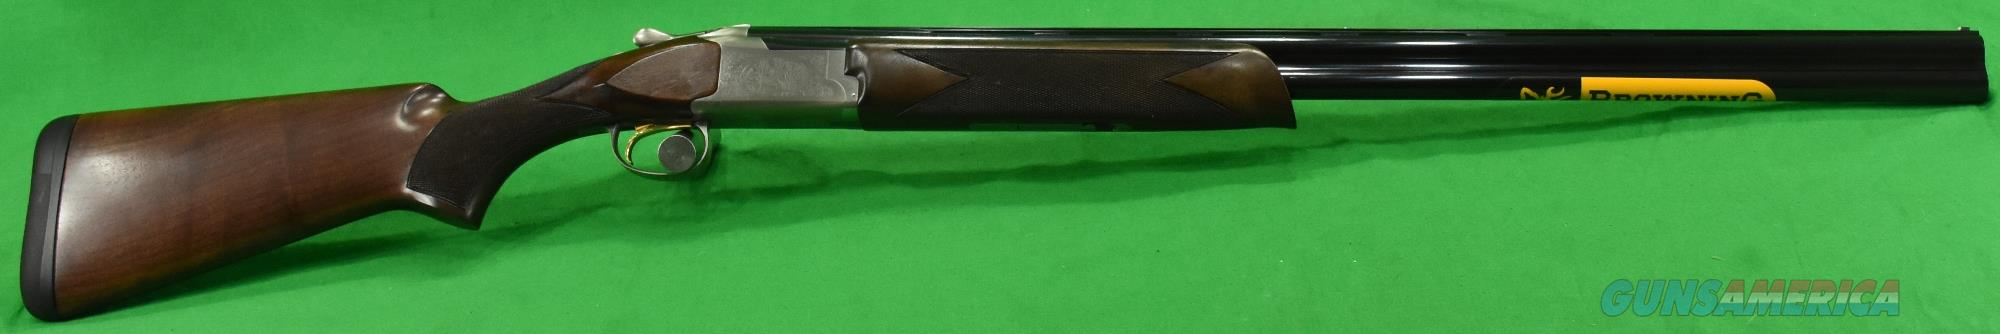 Citori 725 Field Walnut 20Ga 28-3In 0135306004  Guns > Shotguns > Browning Shotguns > Over Unders > Citori > Hunting